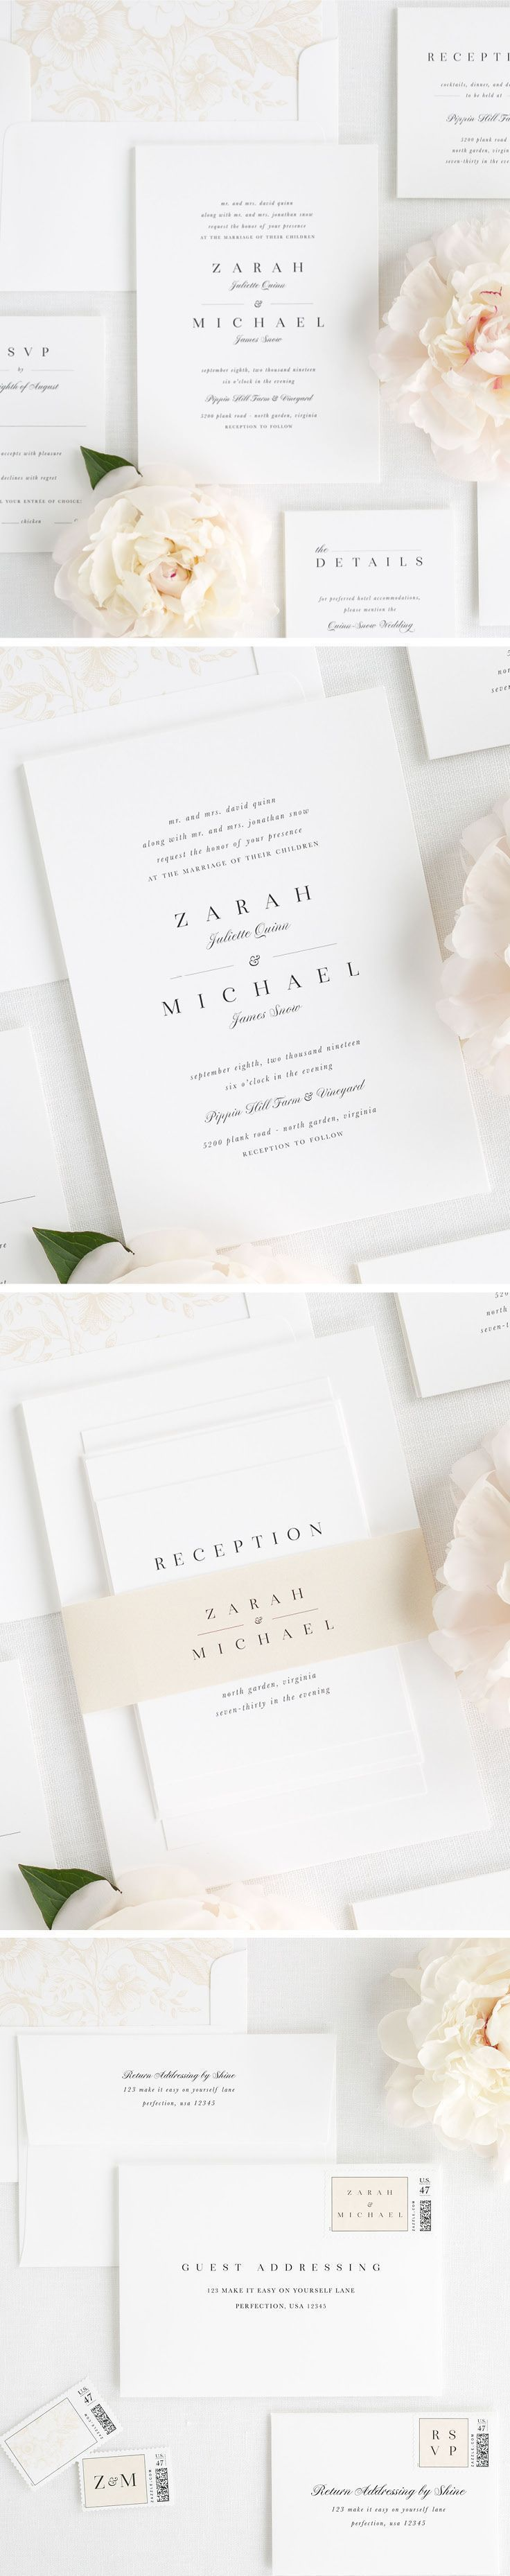 146 Best Wedding Invitations And Save The Dates Images On Pinterest